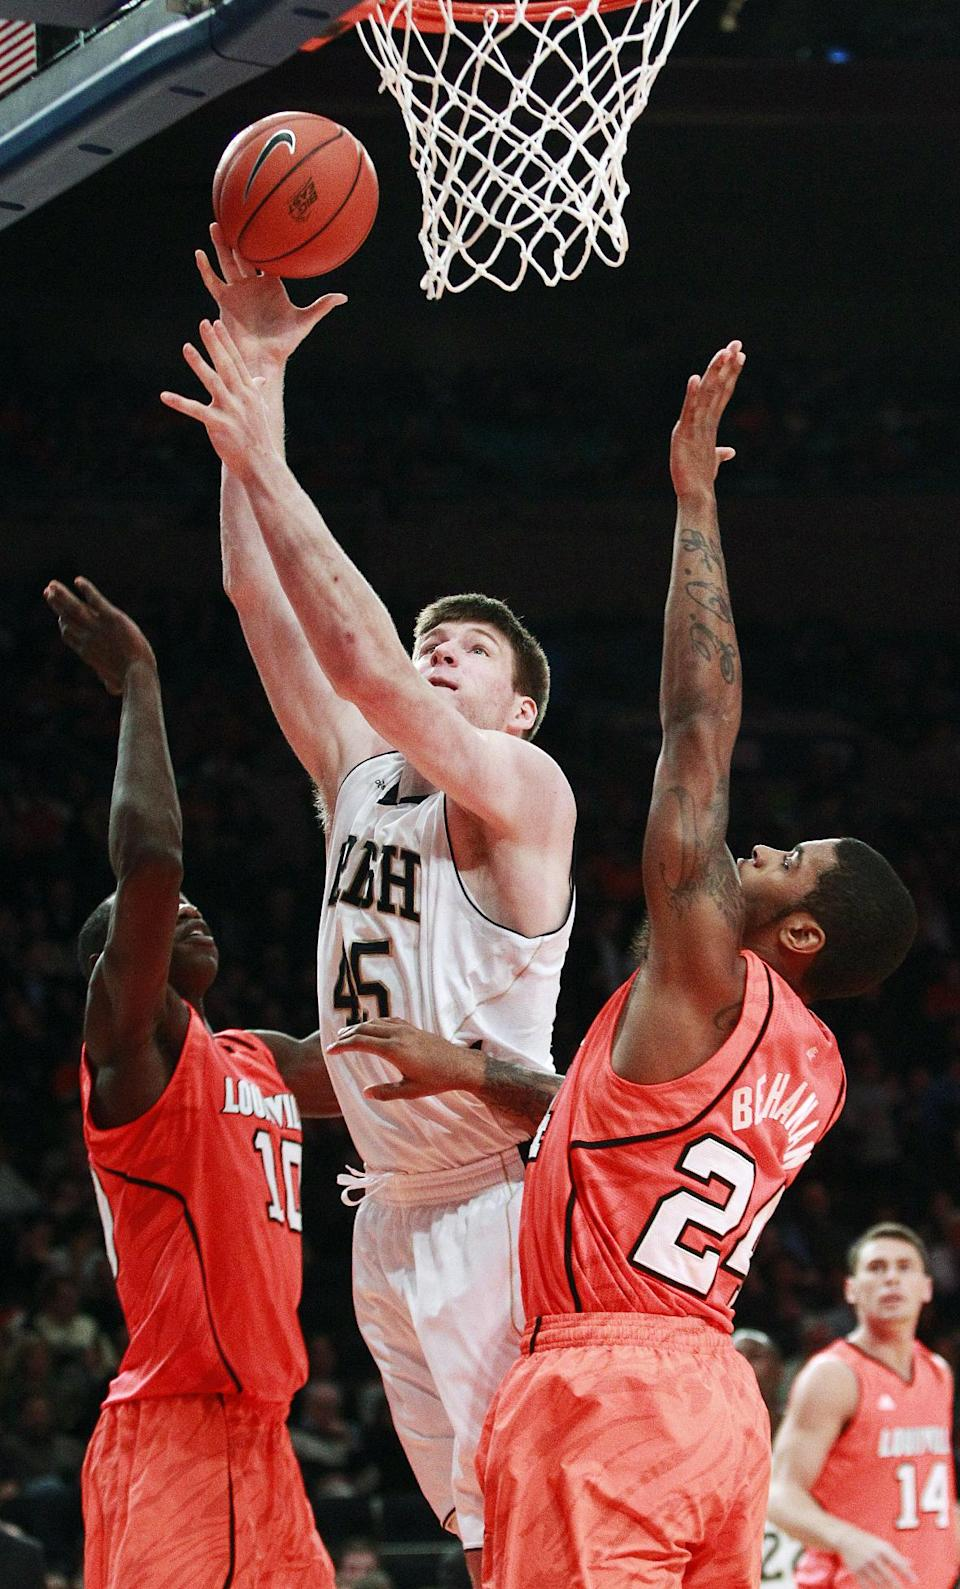 Notre Dame's Jack Cooley (45) drives past Louisville's Gorgui Dieng (10) and Chane Behanan (24) during the first half of an NCAA college basketball game in the semifinals of the Big East Conference tournament in New York, Friday, March 9, 2012. (AP Photo/Frank Franklin II)